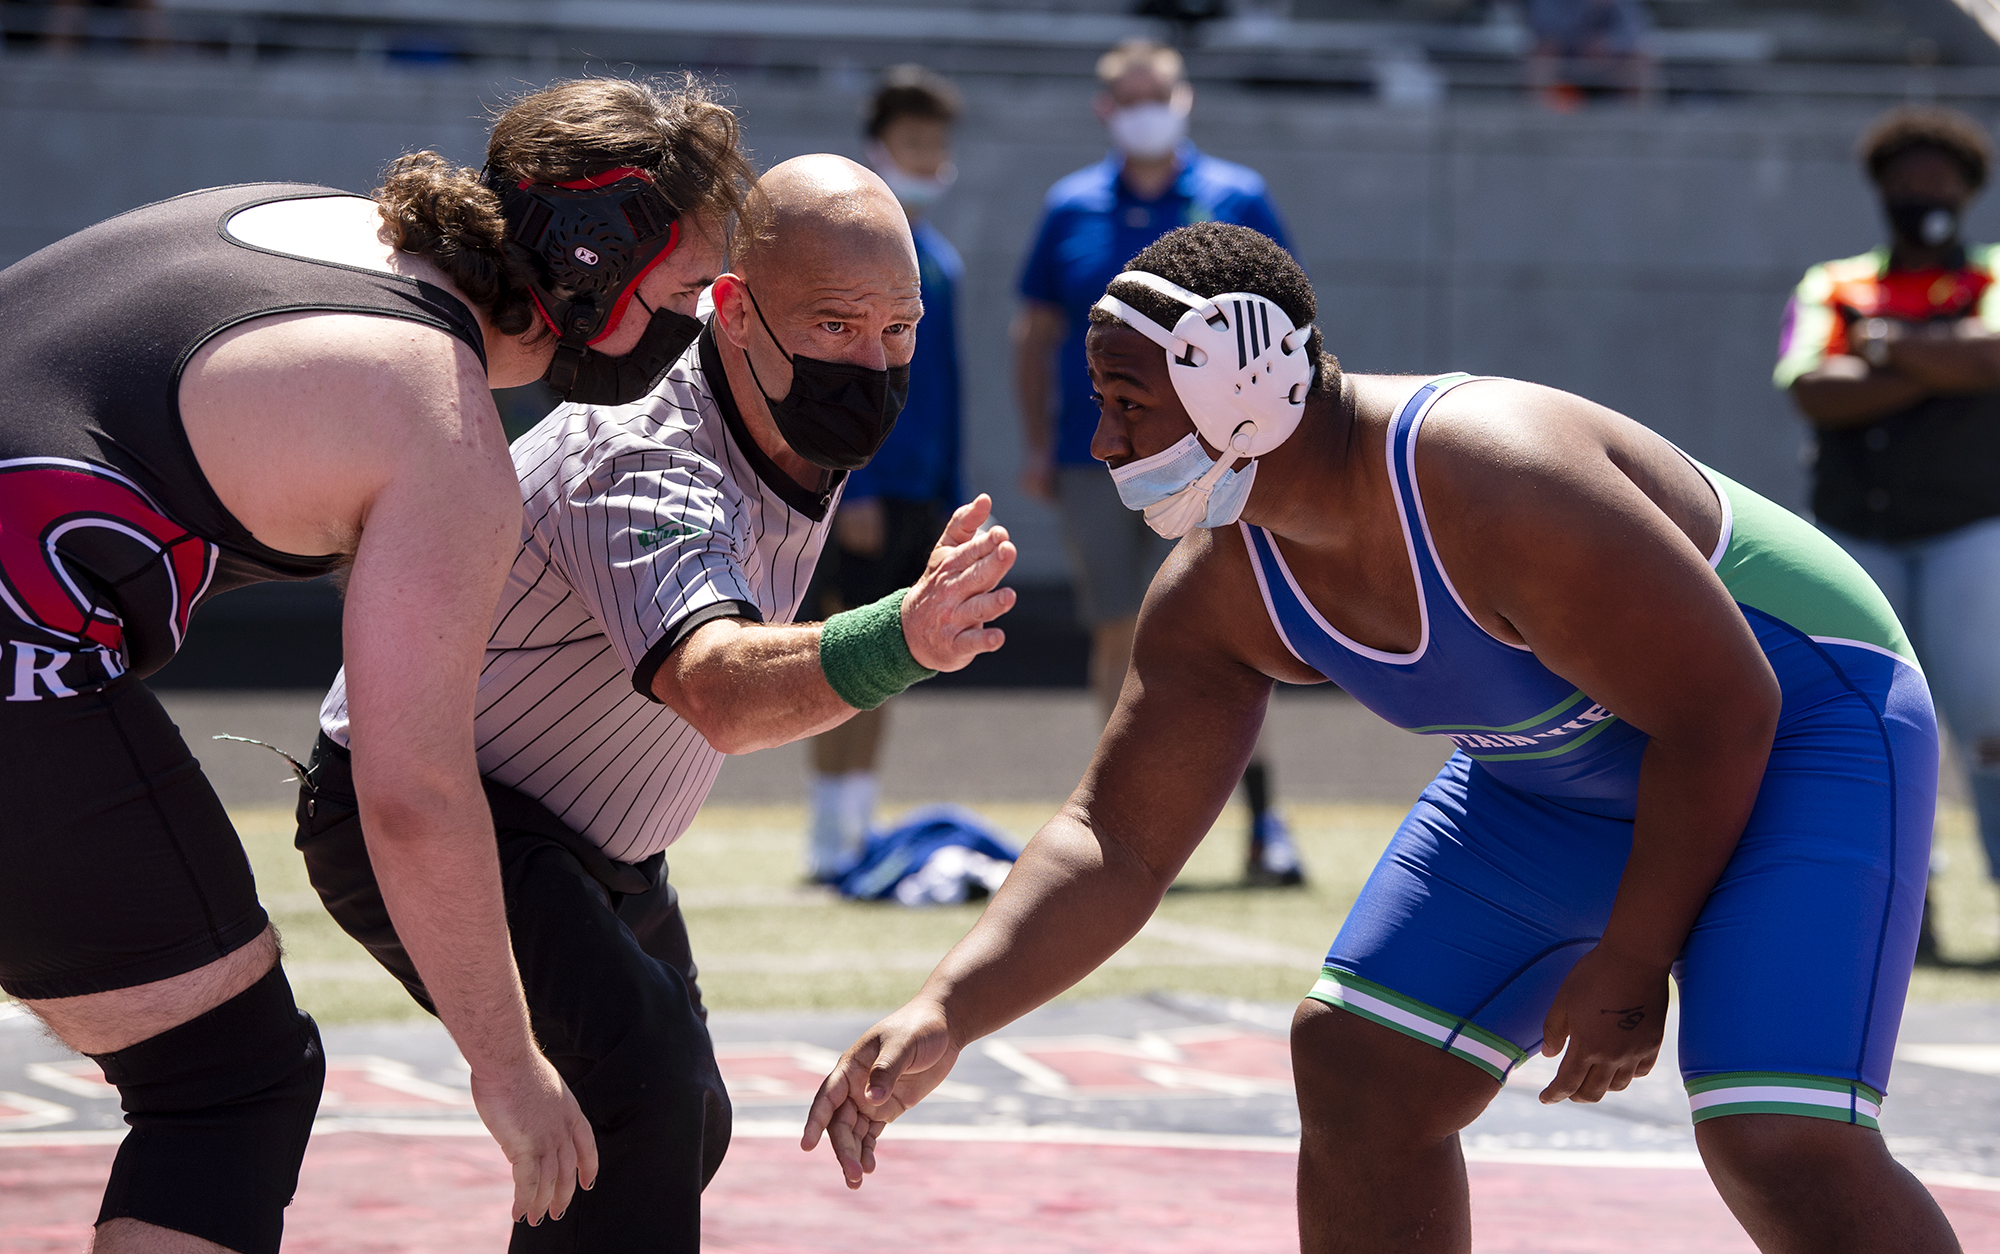 Longtime referee Steve Beamer starts a match at a 4A/3A Greater St. Helens League meet on Saturday, May 15, 2021, at Doc Harris Stadium in Camas.